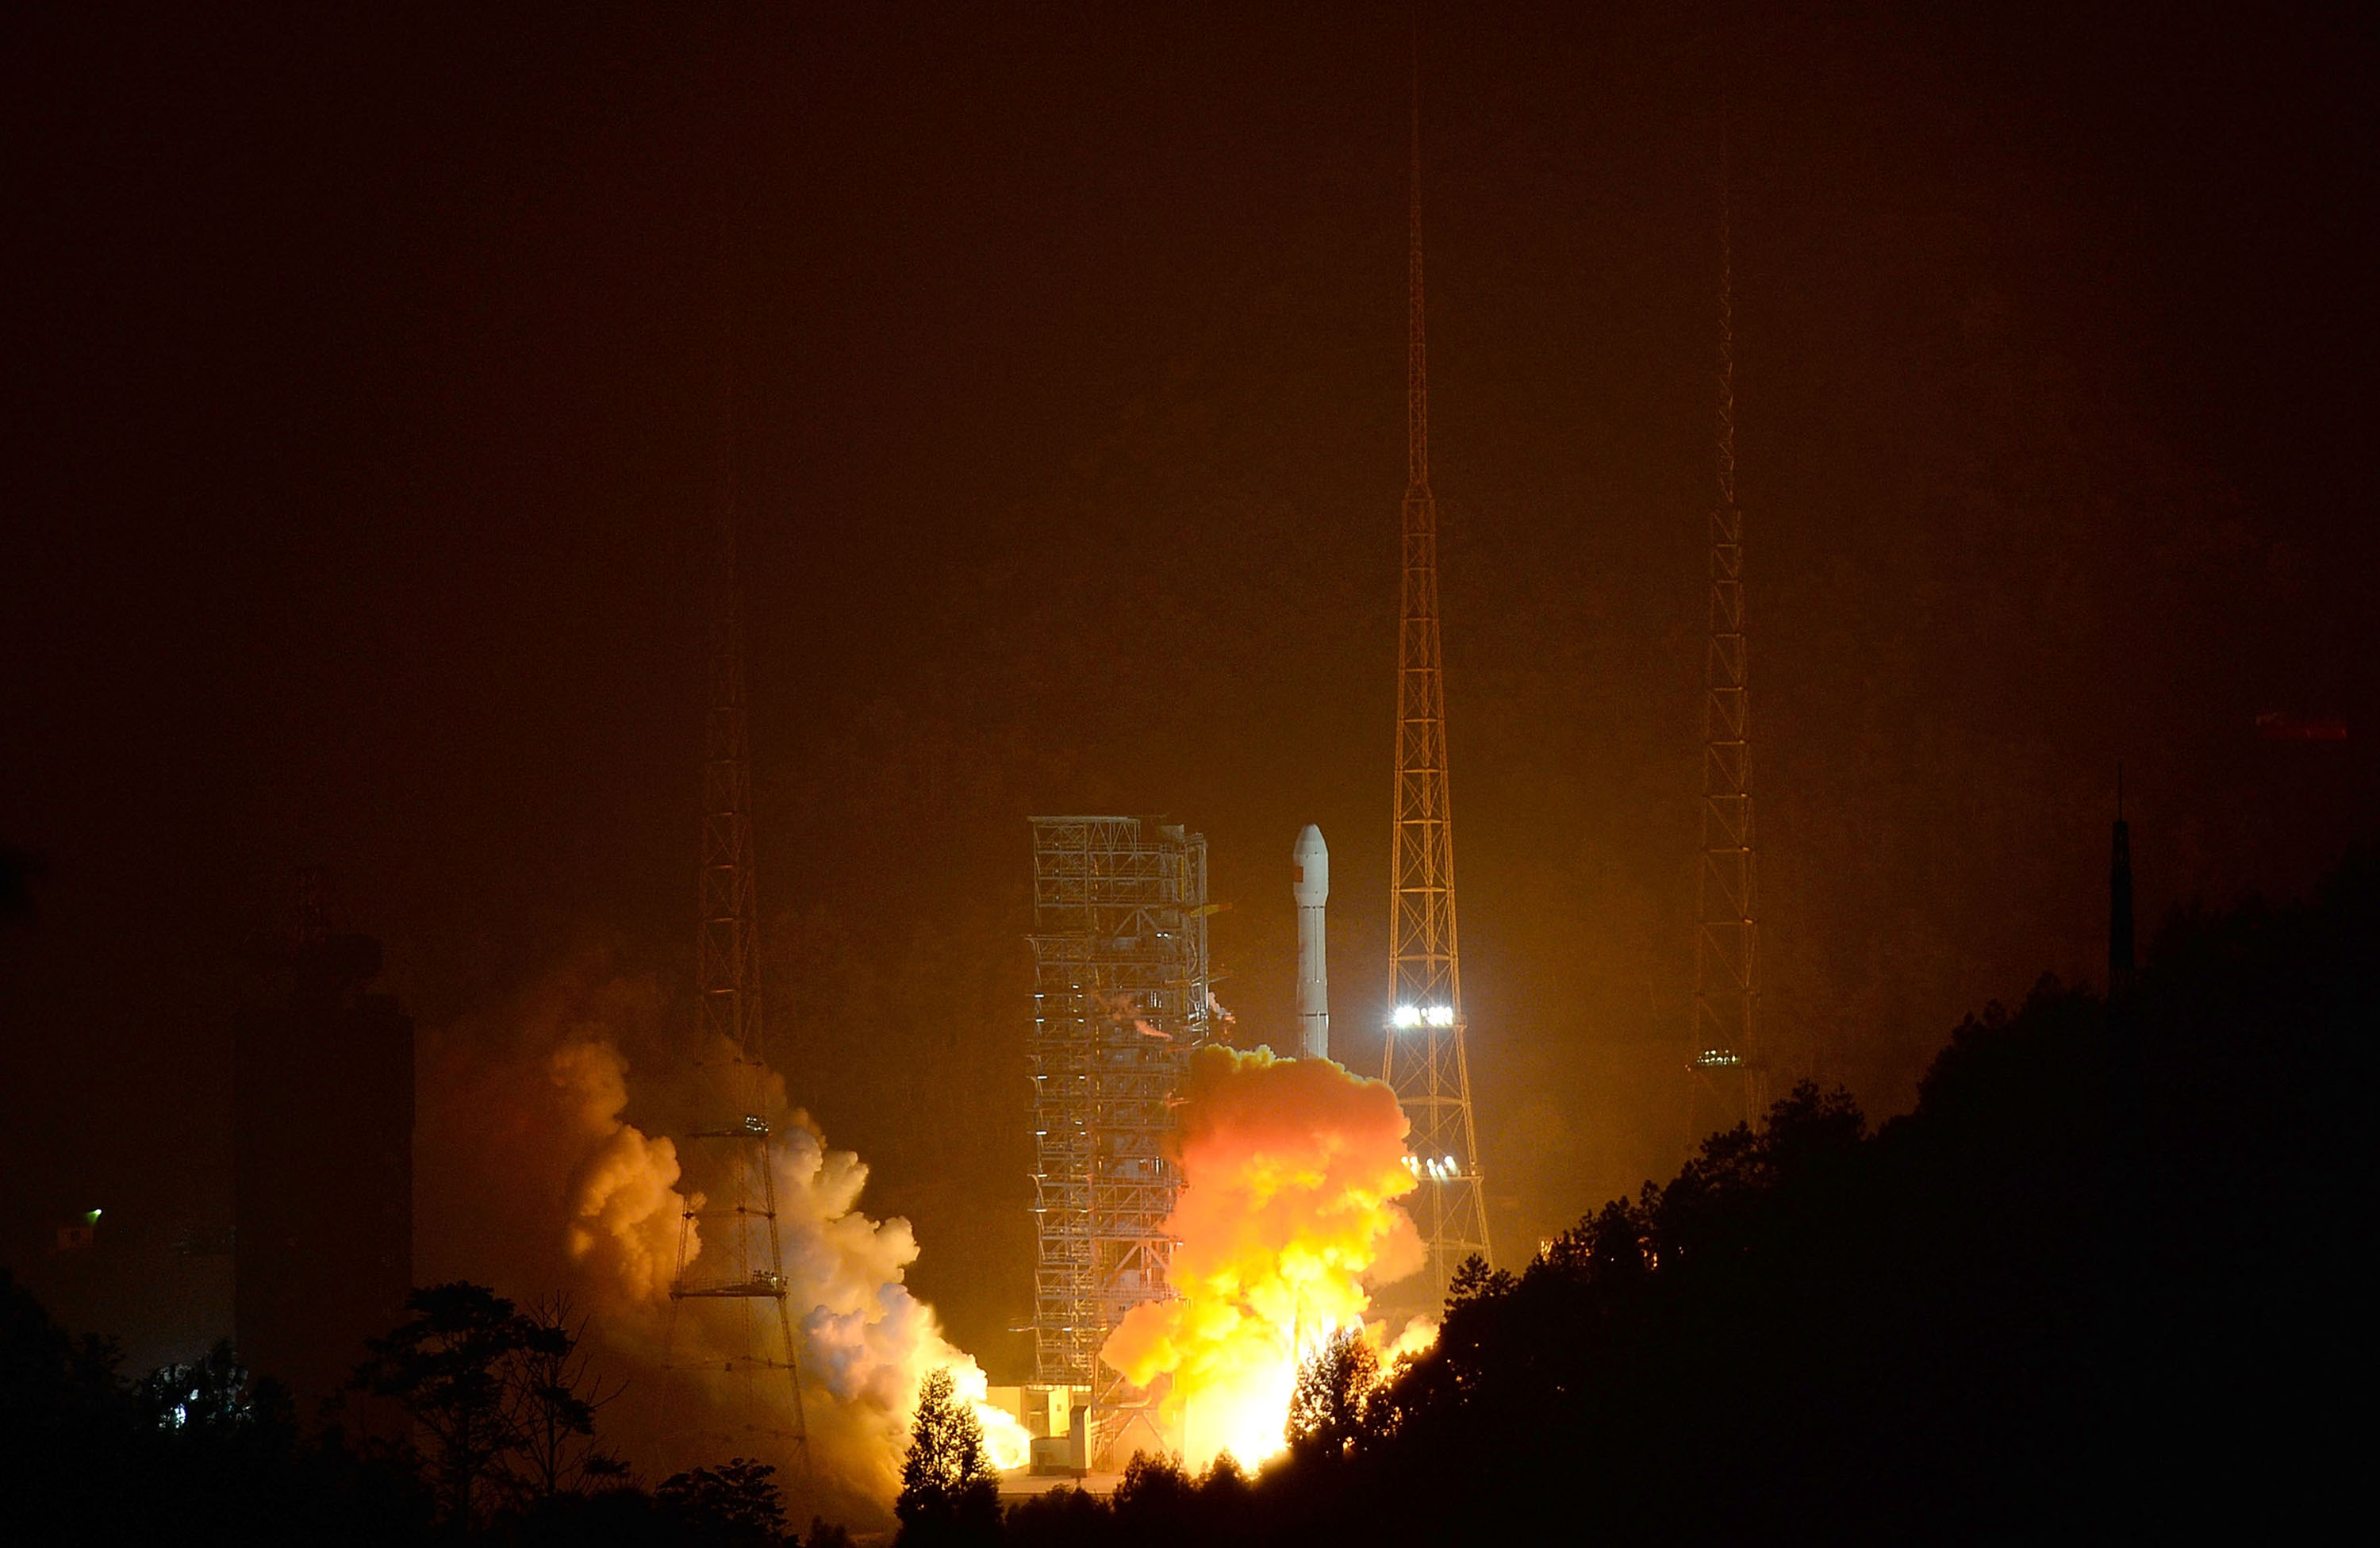 China Launches Military Spy Satellite Under Civilian Veil